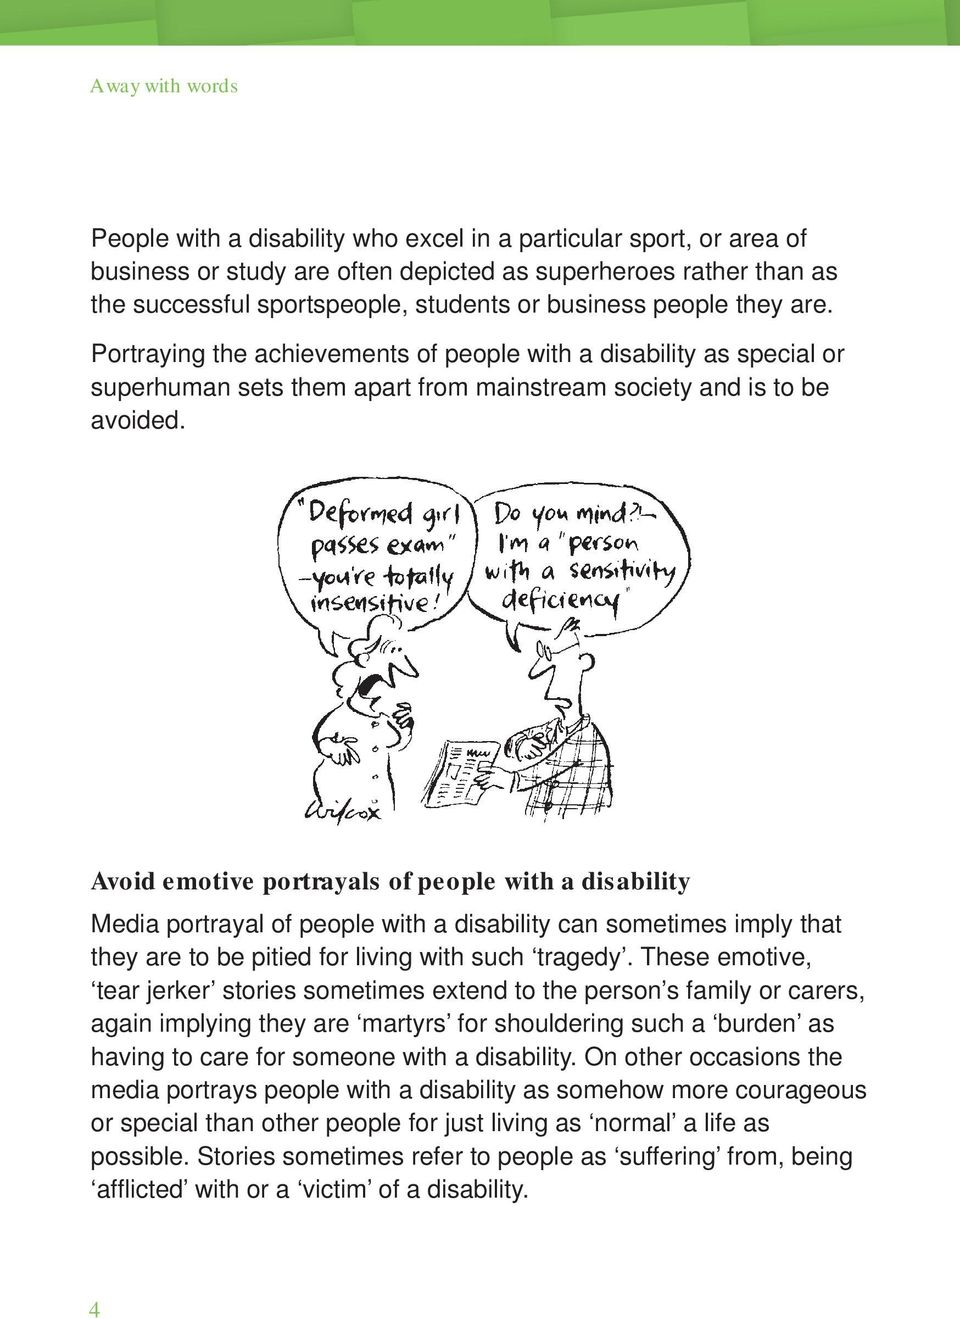 Avoid emotive portrayals of people with a disability Media portrayal of people with a disability can sometimes imply that they are to be pitied for living with such tragedy.